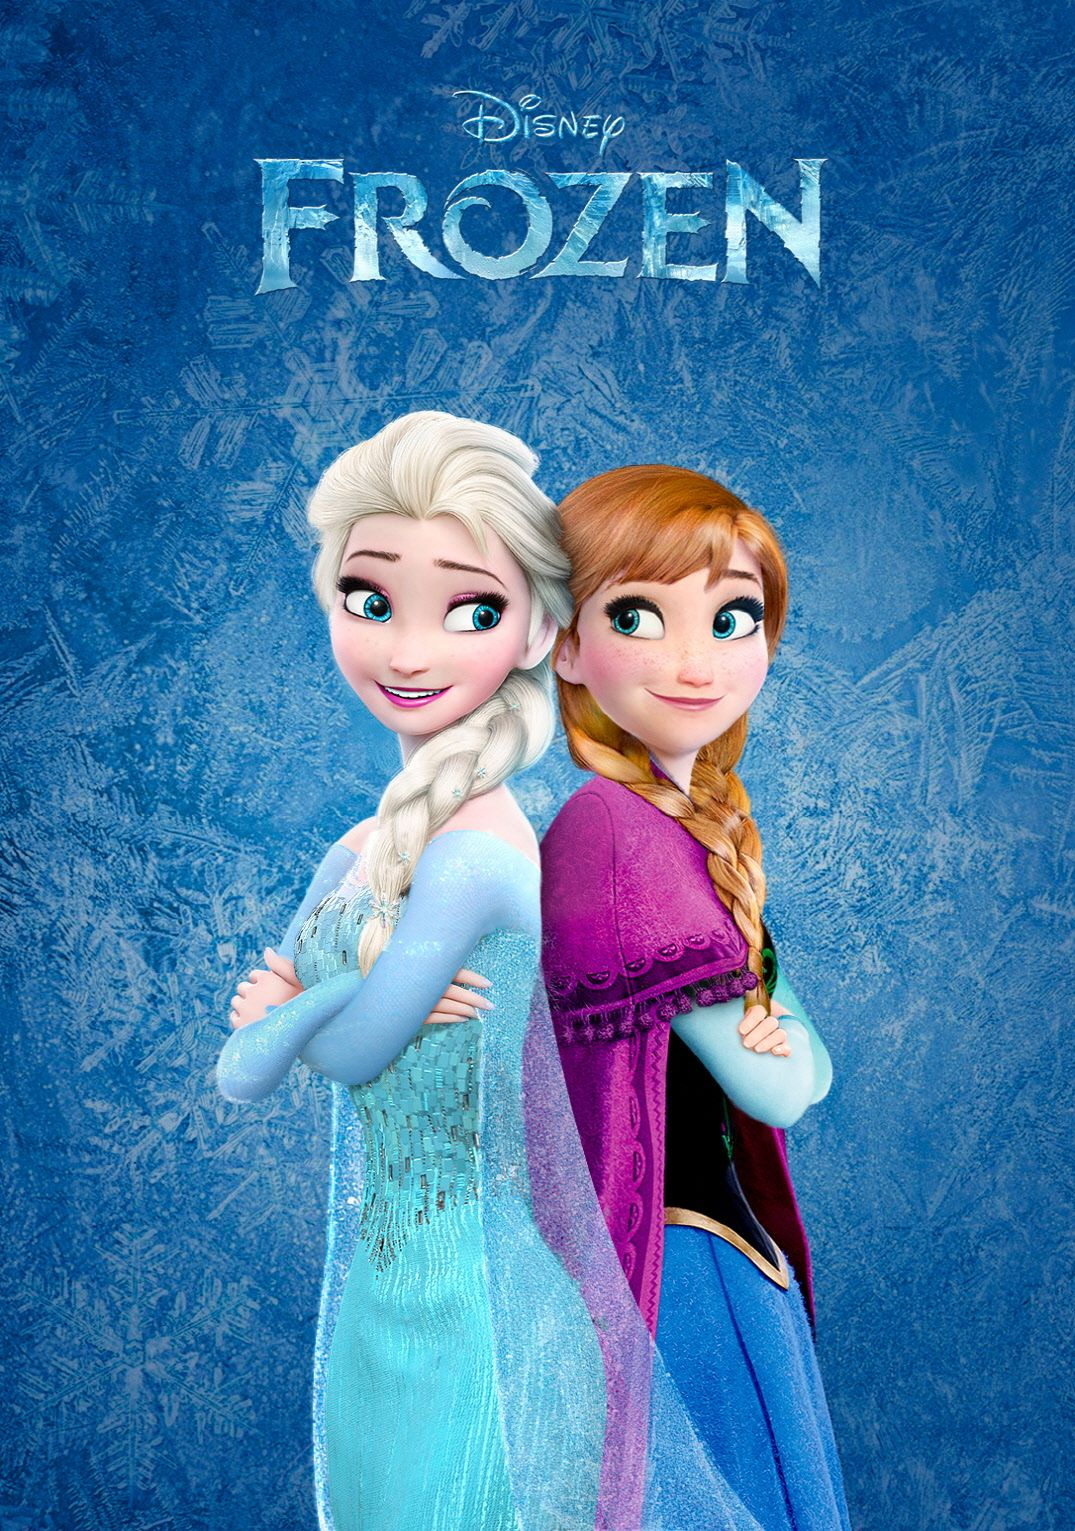 Frozen Frozen disney movie, Frozen wallpaper